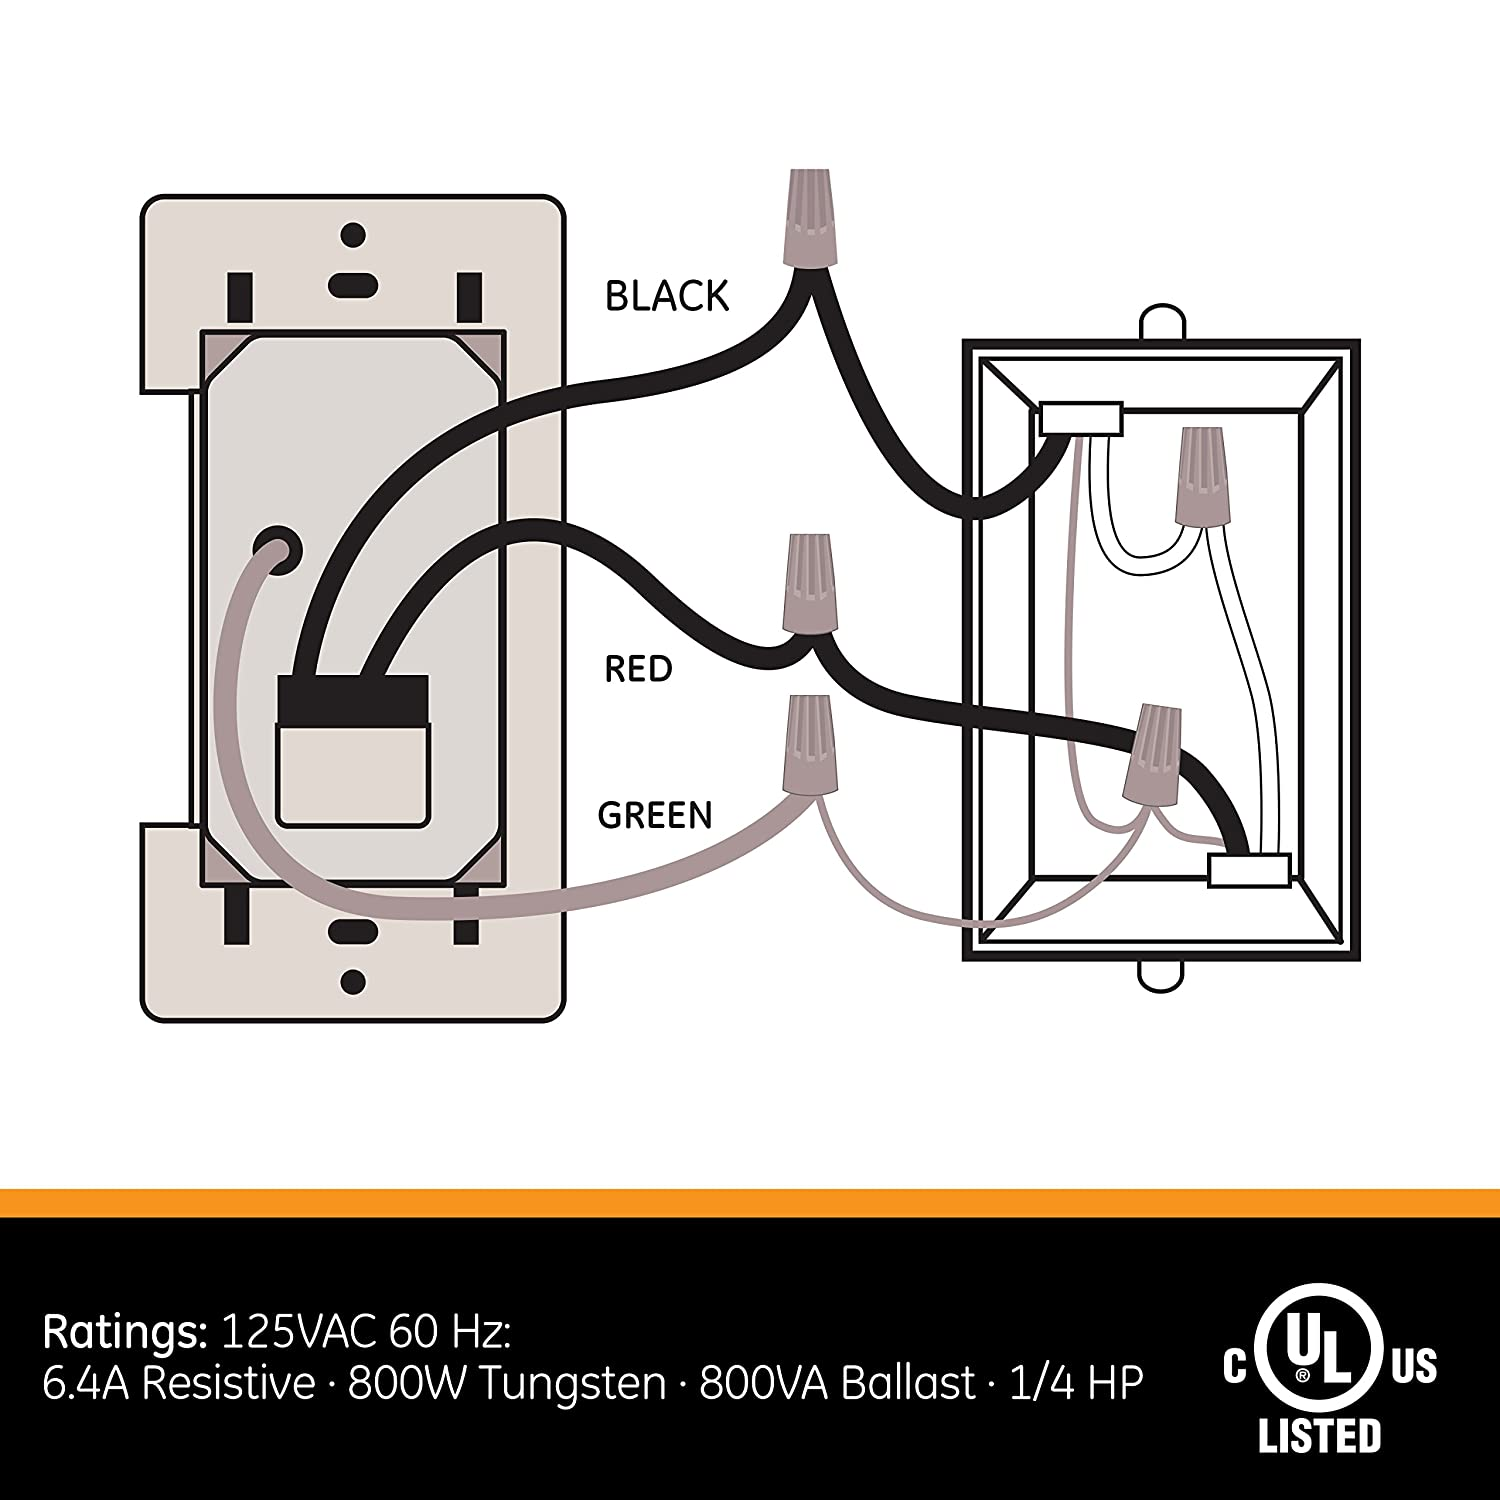 Ge Push Button In Wall Digital Countdown Timer Switch 5 15 30 Wiring Bathroom Fan Light Bo Besides Diagram Minute And 1 2 4 Hour Presets On Off No Neutral Wire Required For Lights Exhaust Fans